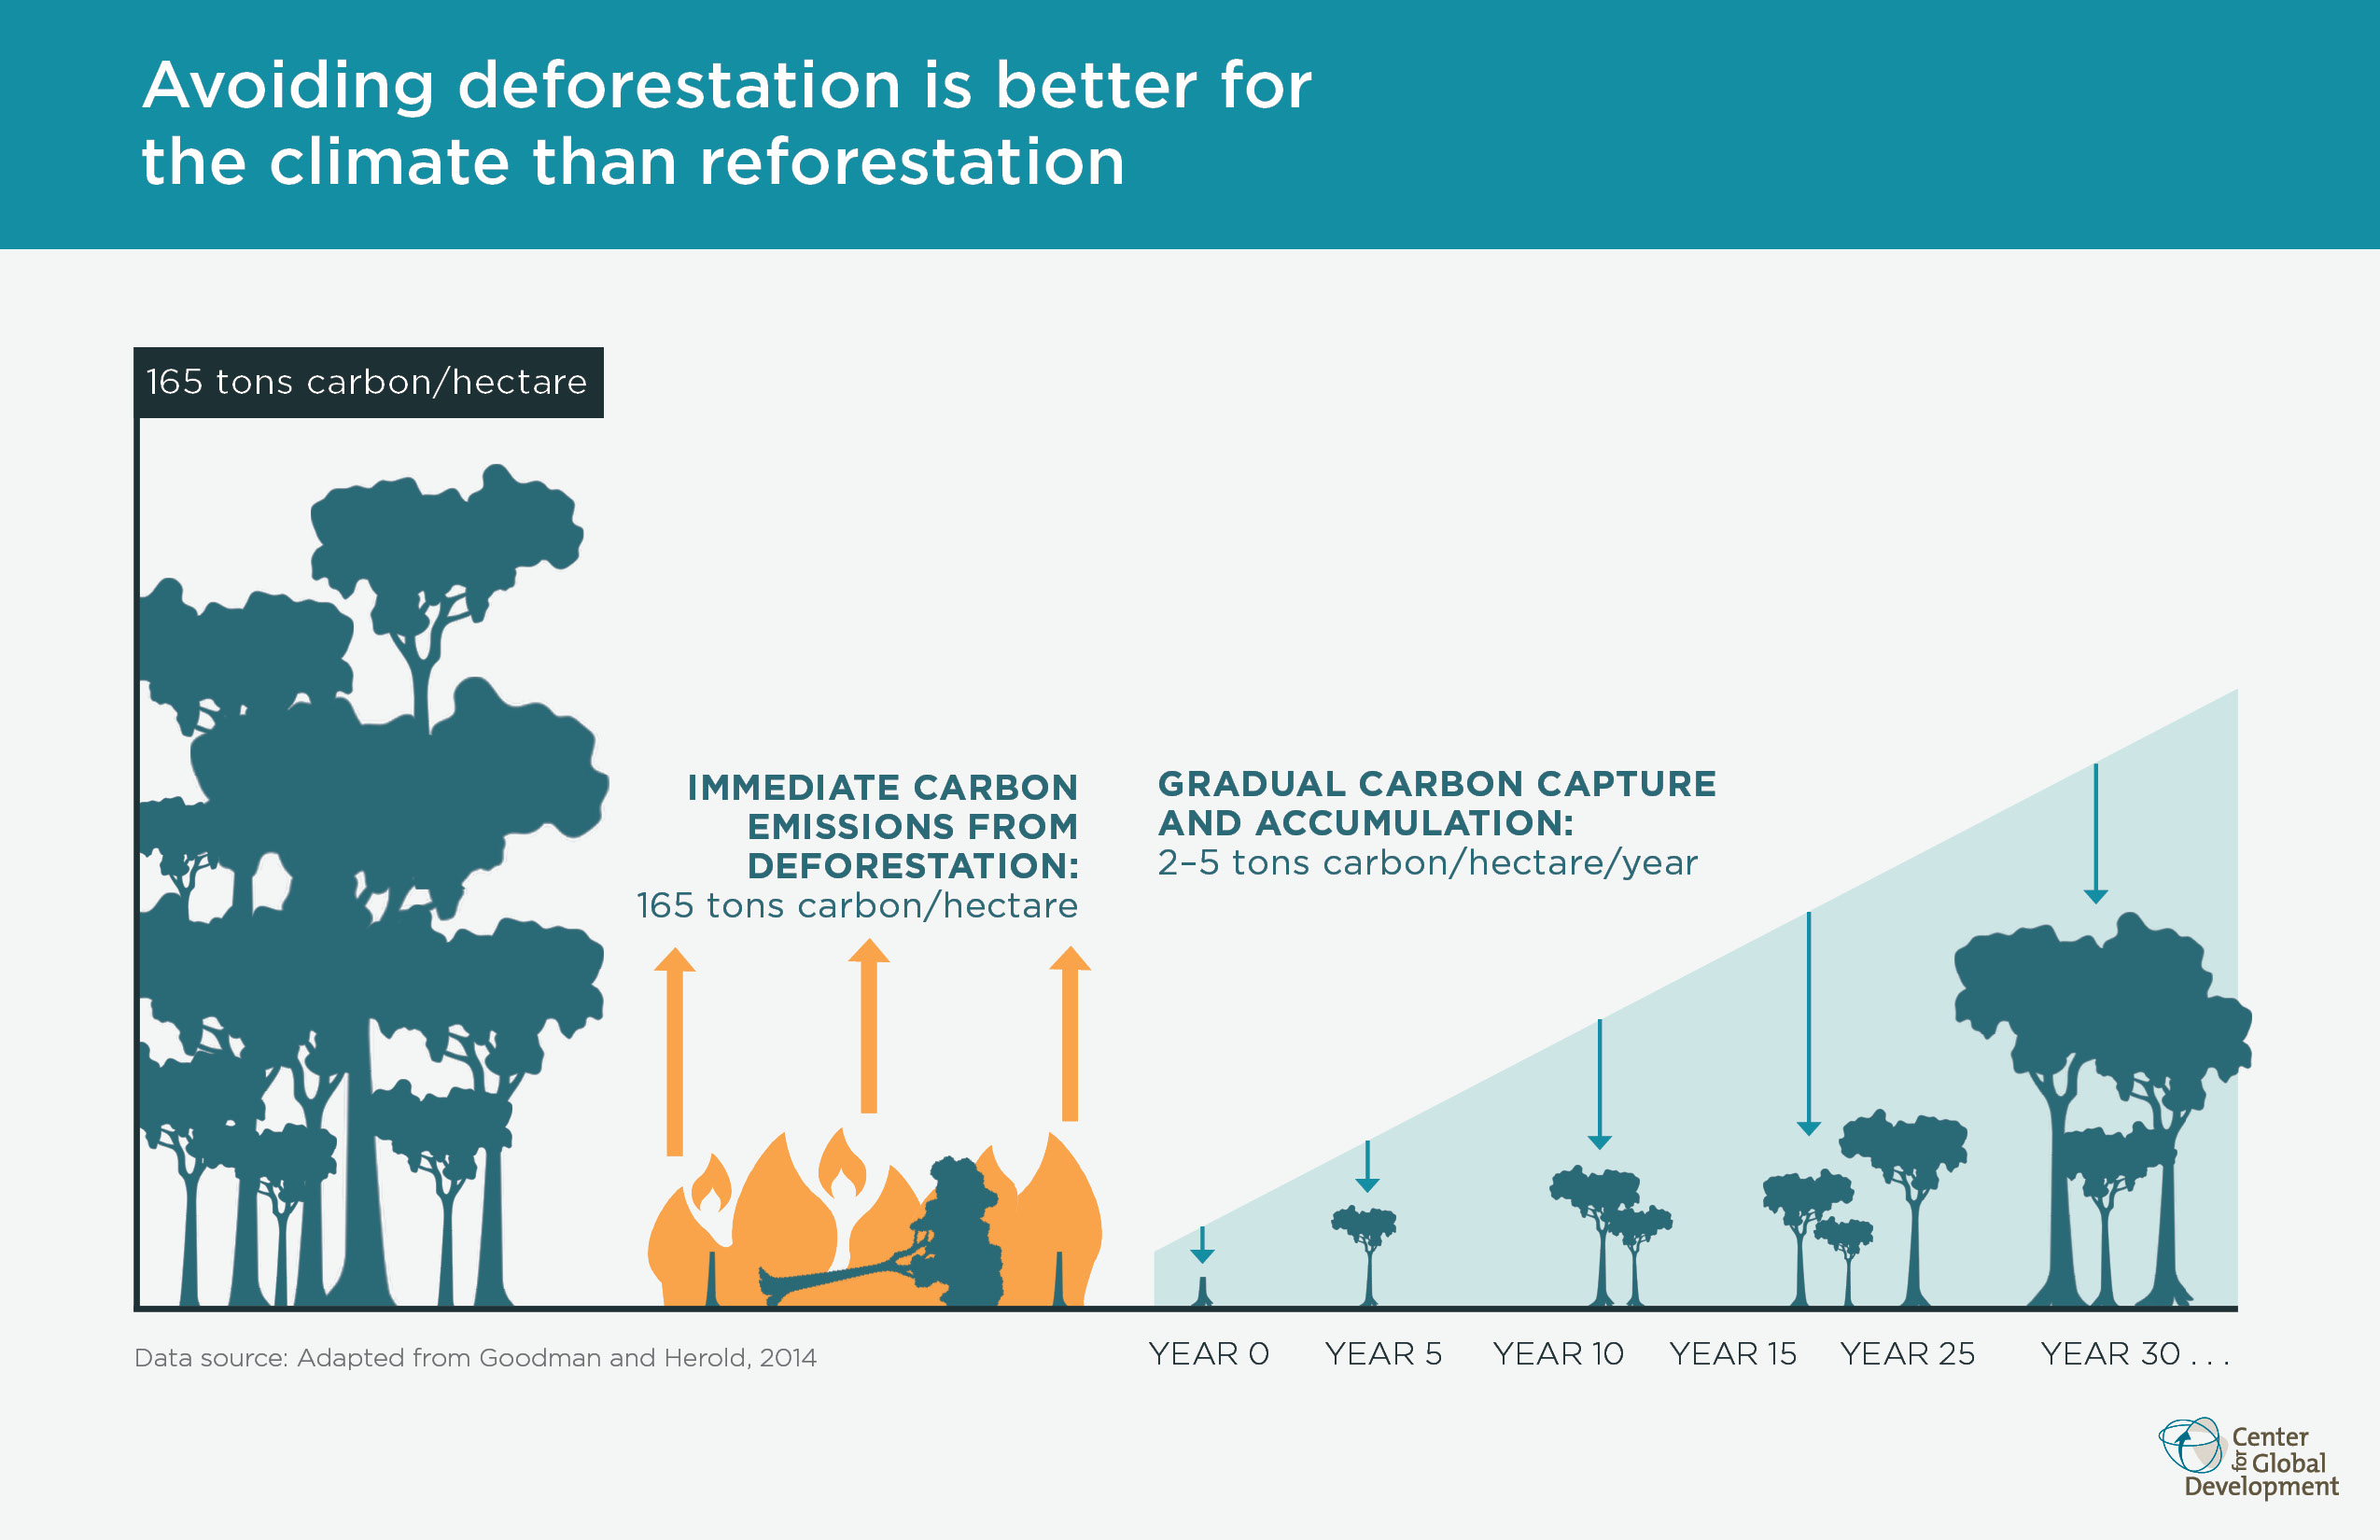 Why Forests Why Now A Preview of the Science Economics